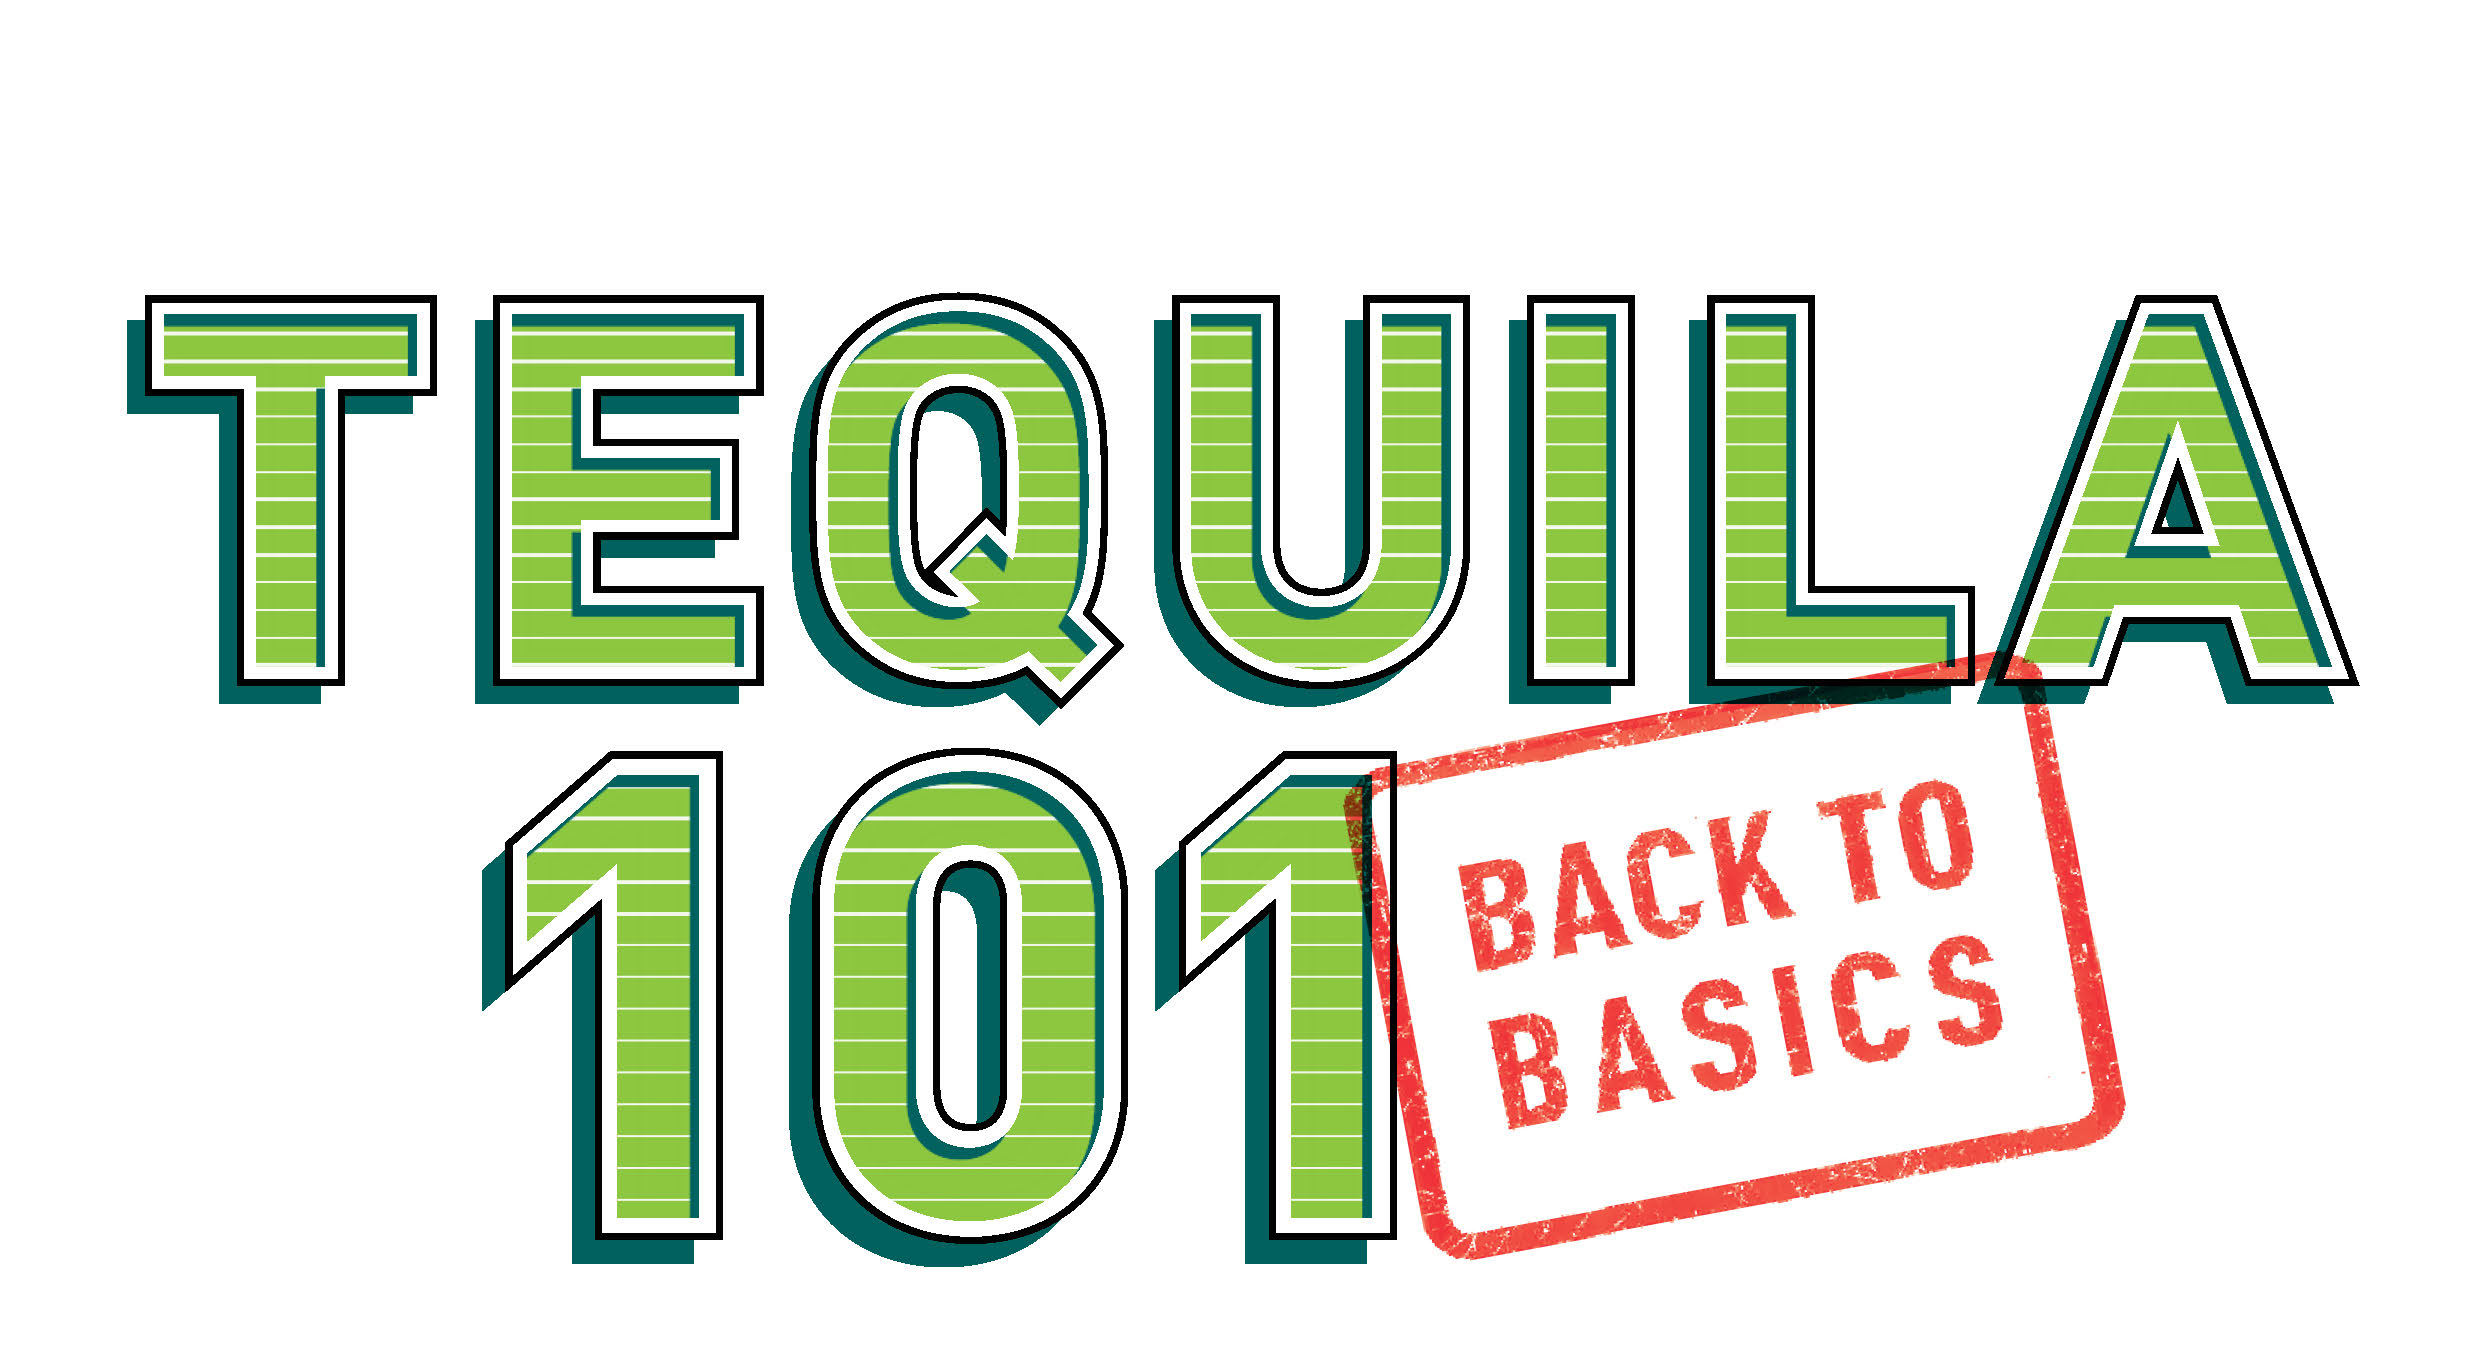 BacktoBasics_Tequila101.jpg